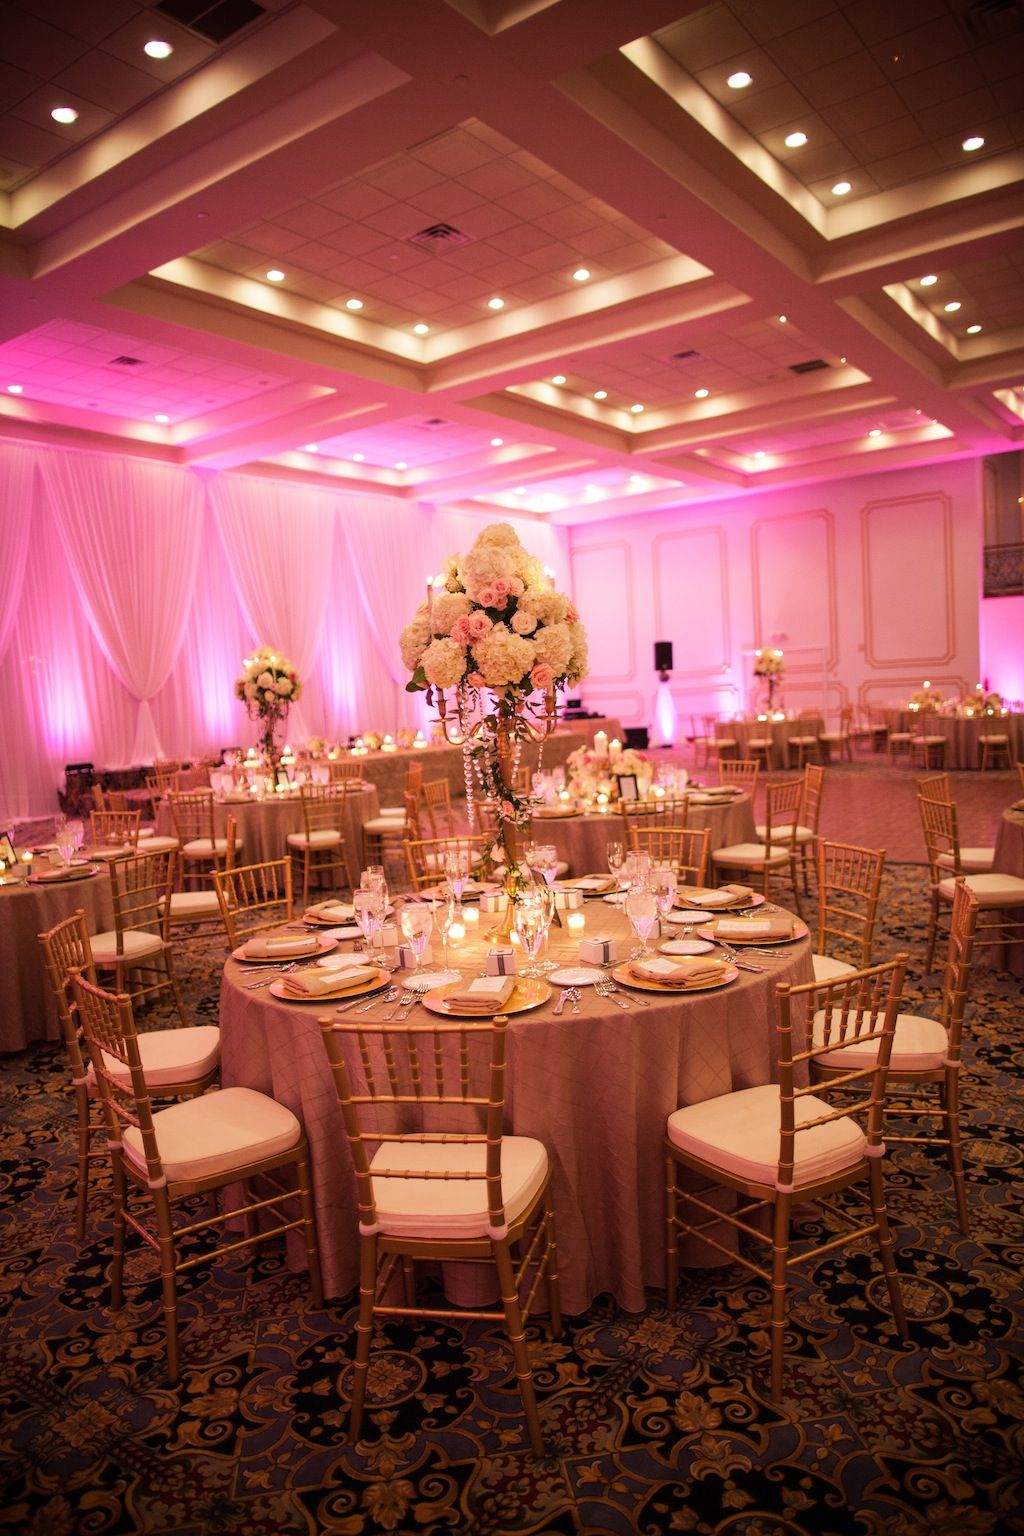 Floridan Palace | Pinterest | Palace, Elegant and Weddings